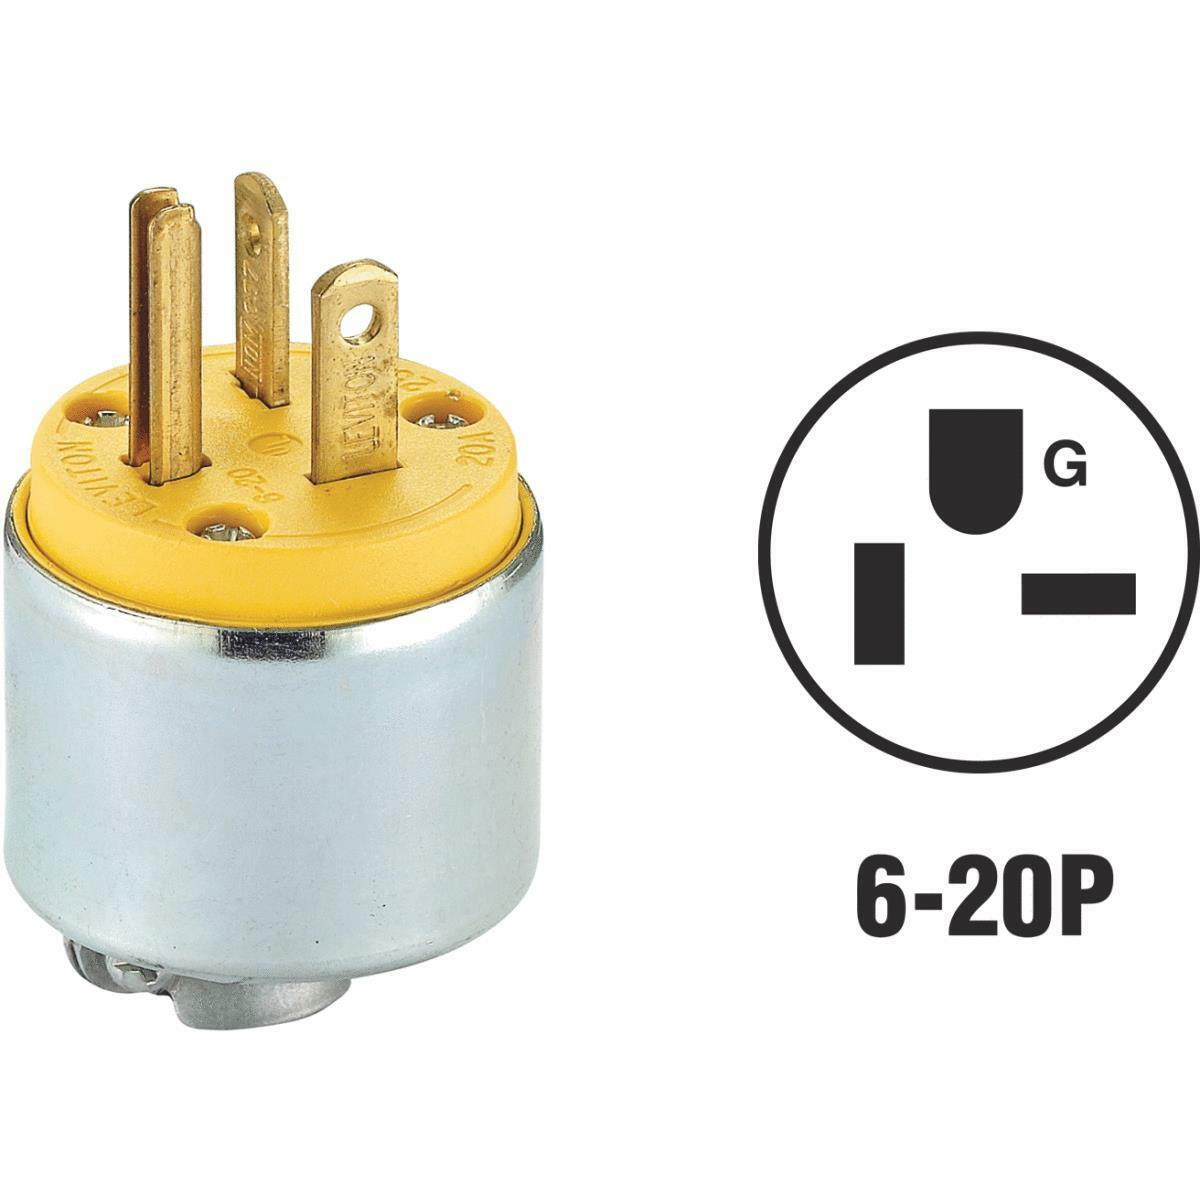 Leviton 620PA 20 Amp 250v Armored Grounding Extension Cord Plug ...